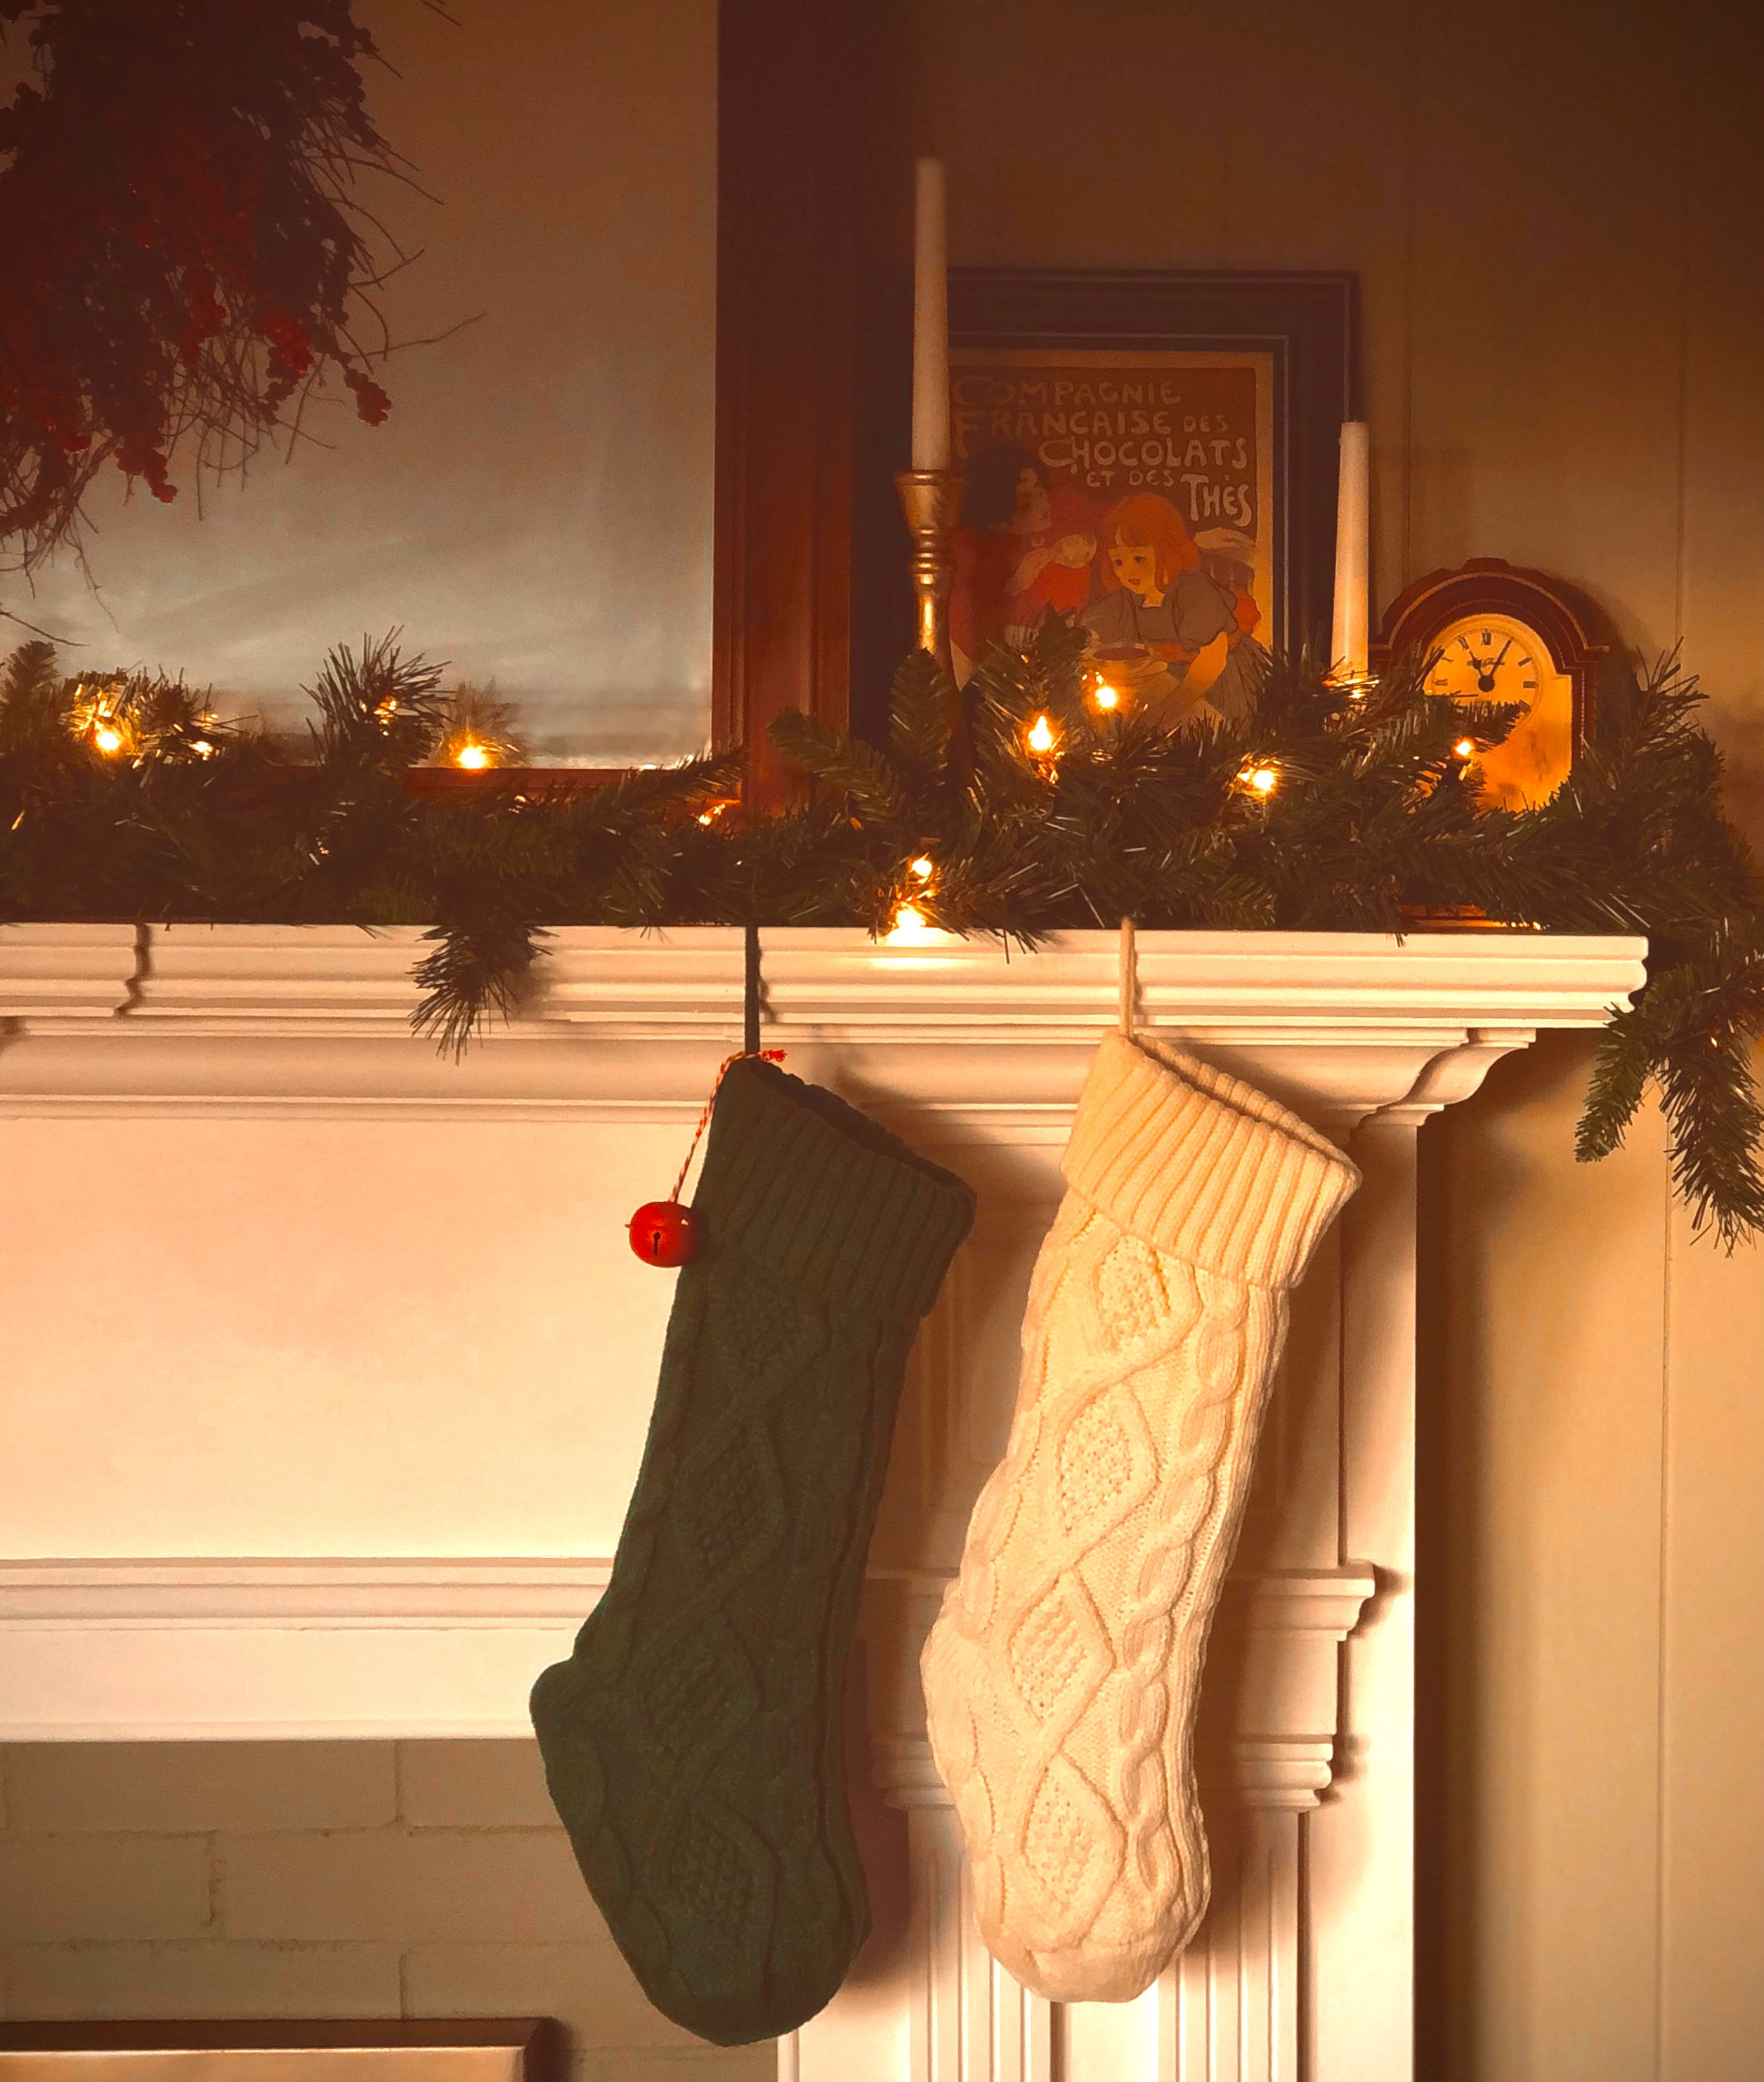 DIY Christmas Decorations Stocking Fireplace Cosy Home Christmas Crafts Knitting